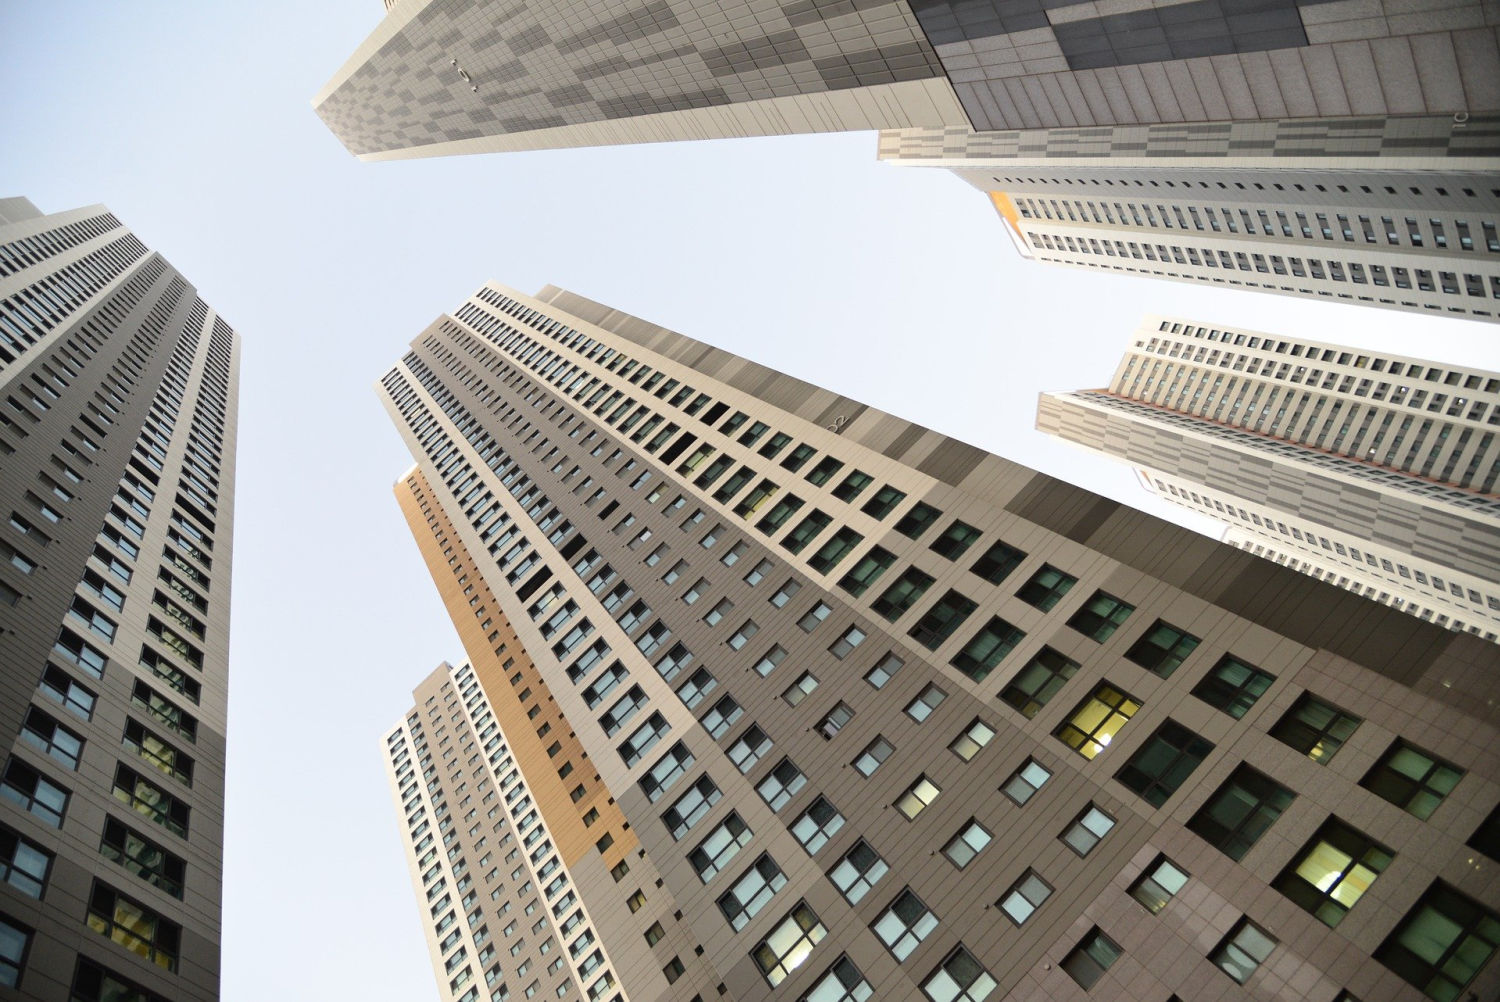 real estate in a big city like these buildings makes for a good real estate investment